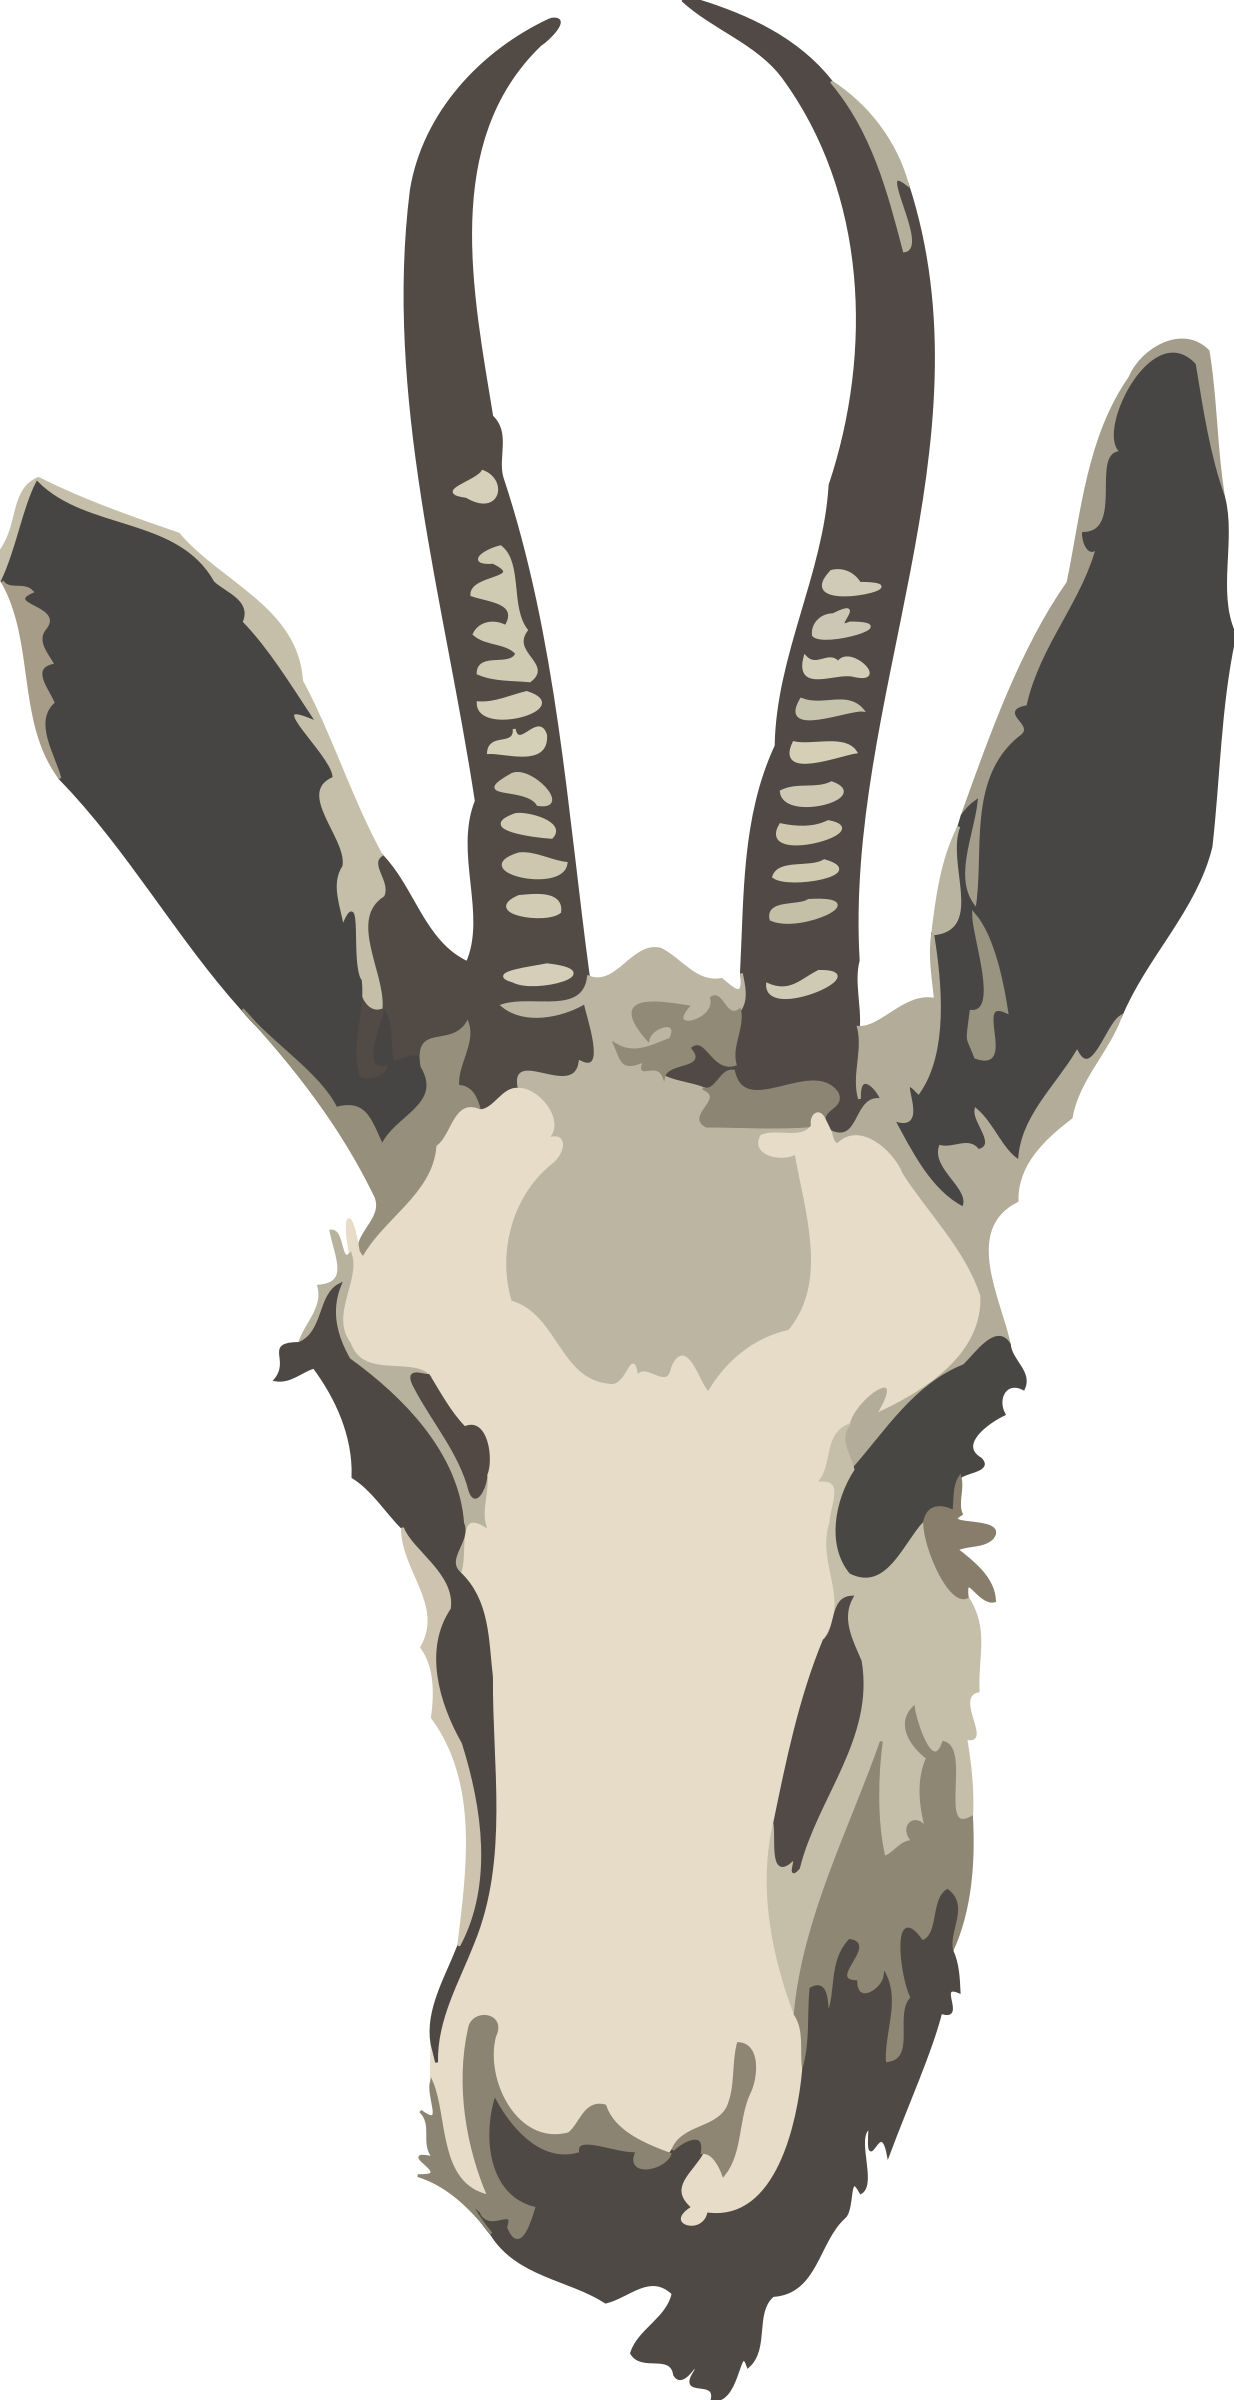 Springbok ewe's head (simplified) by Firkin